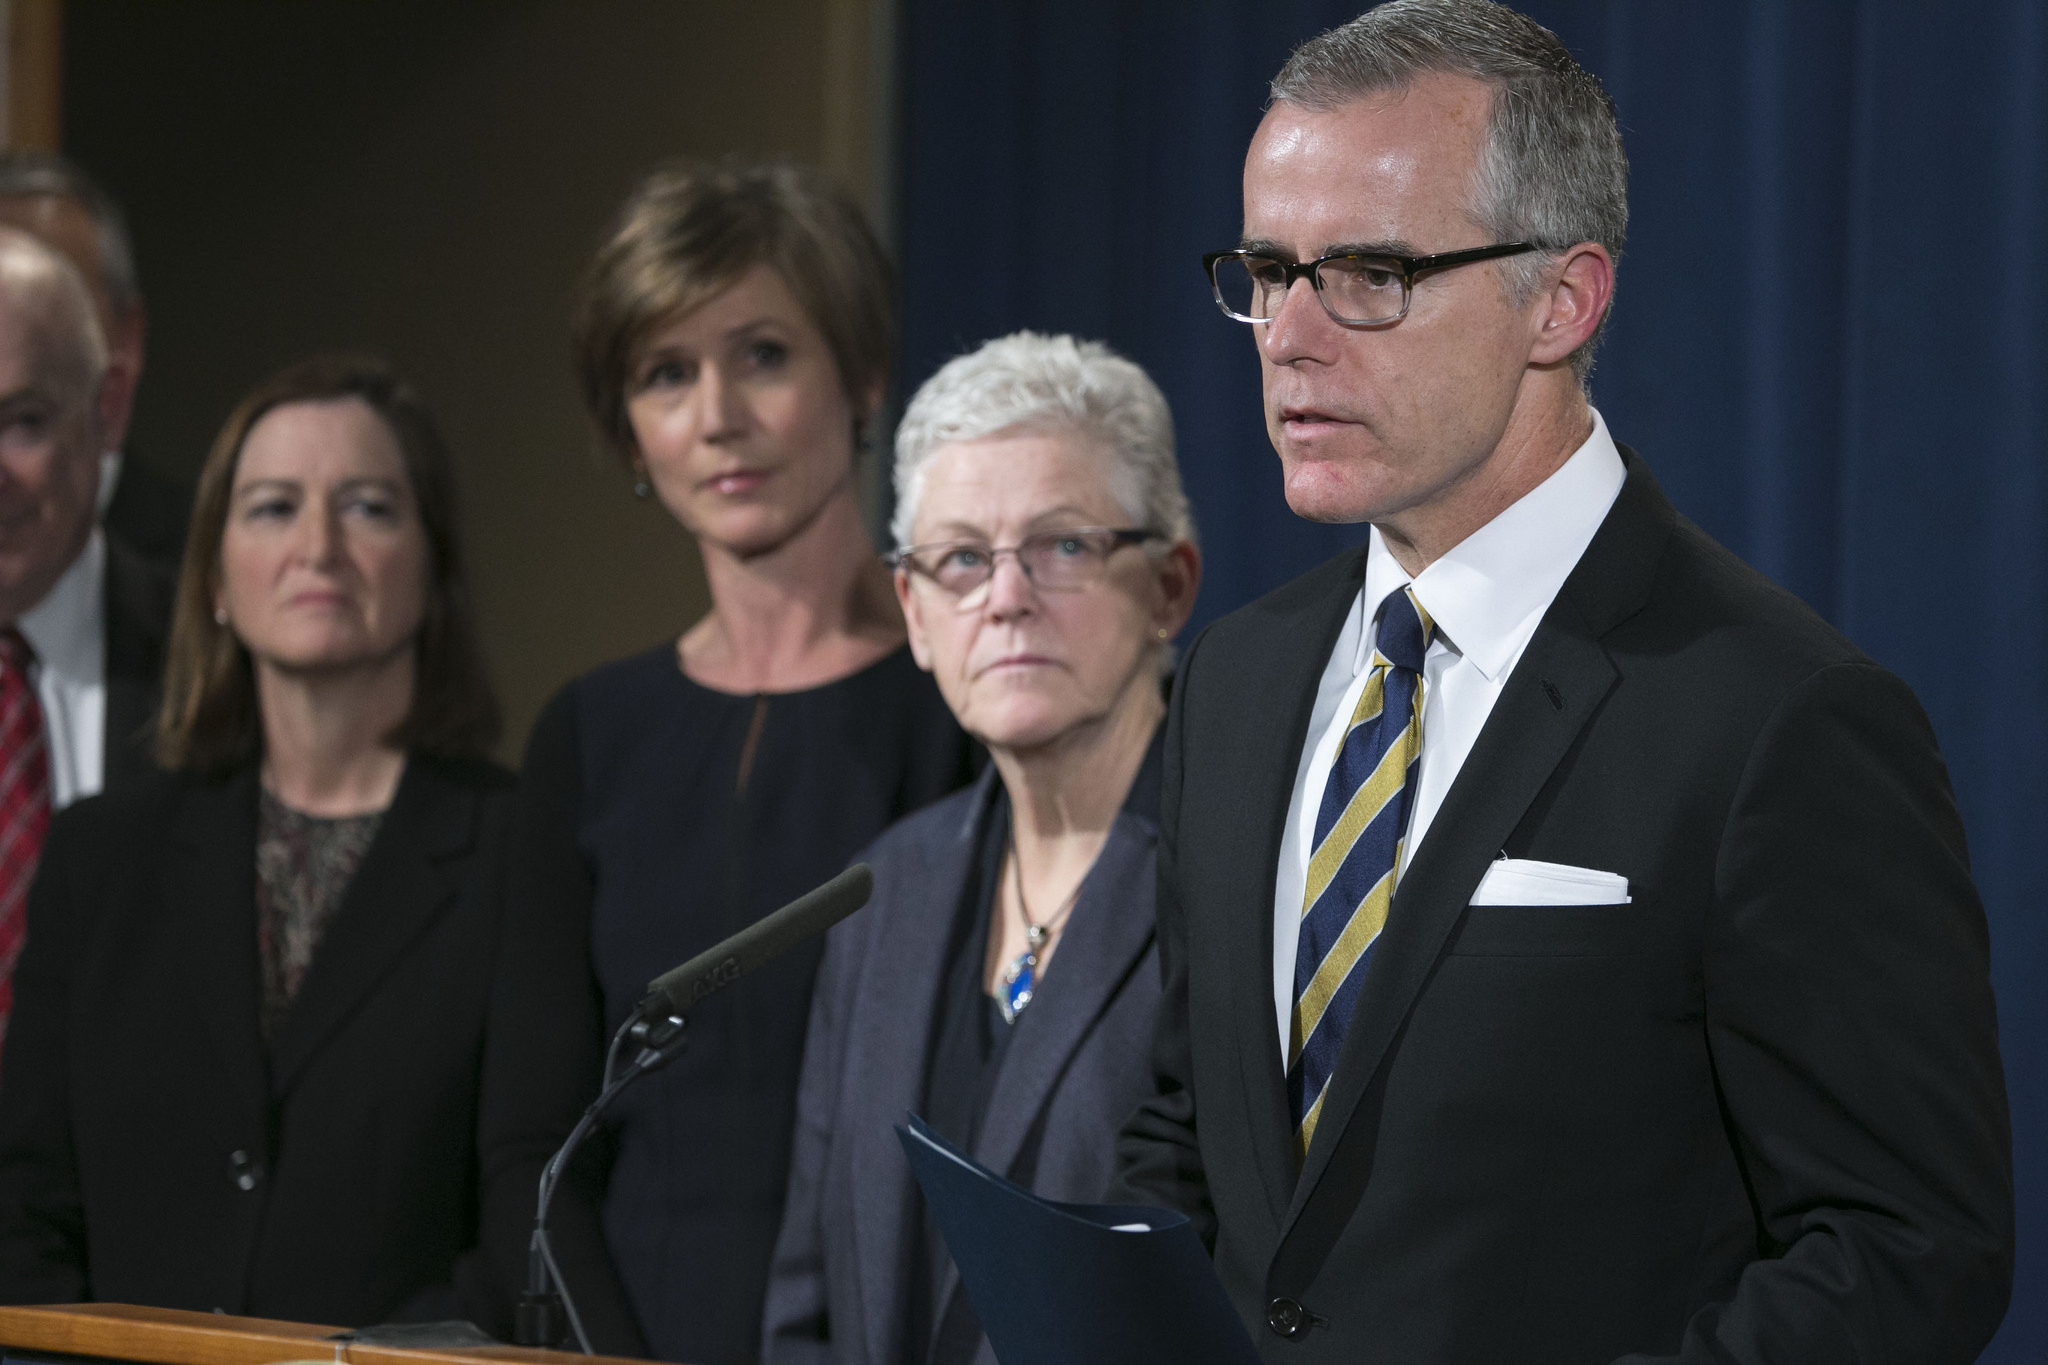 McCabe Steps Down After Vile Trump Attacks